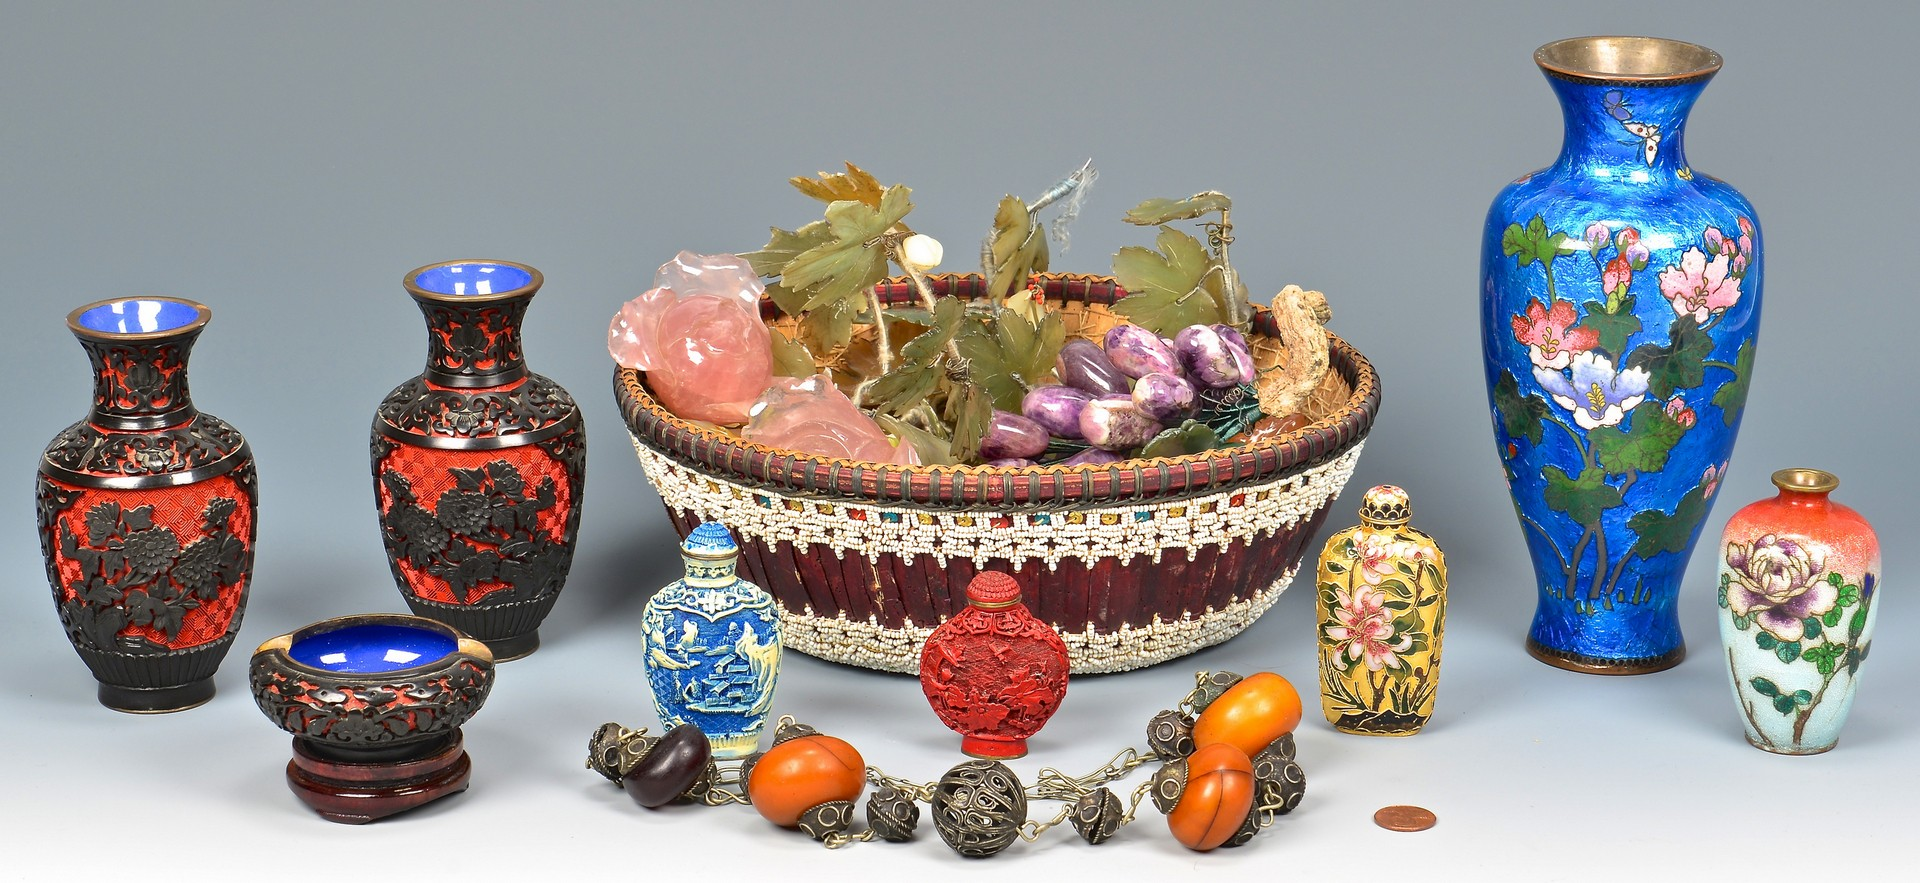 Lot 4010191: Group of Asian Decorative Items